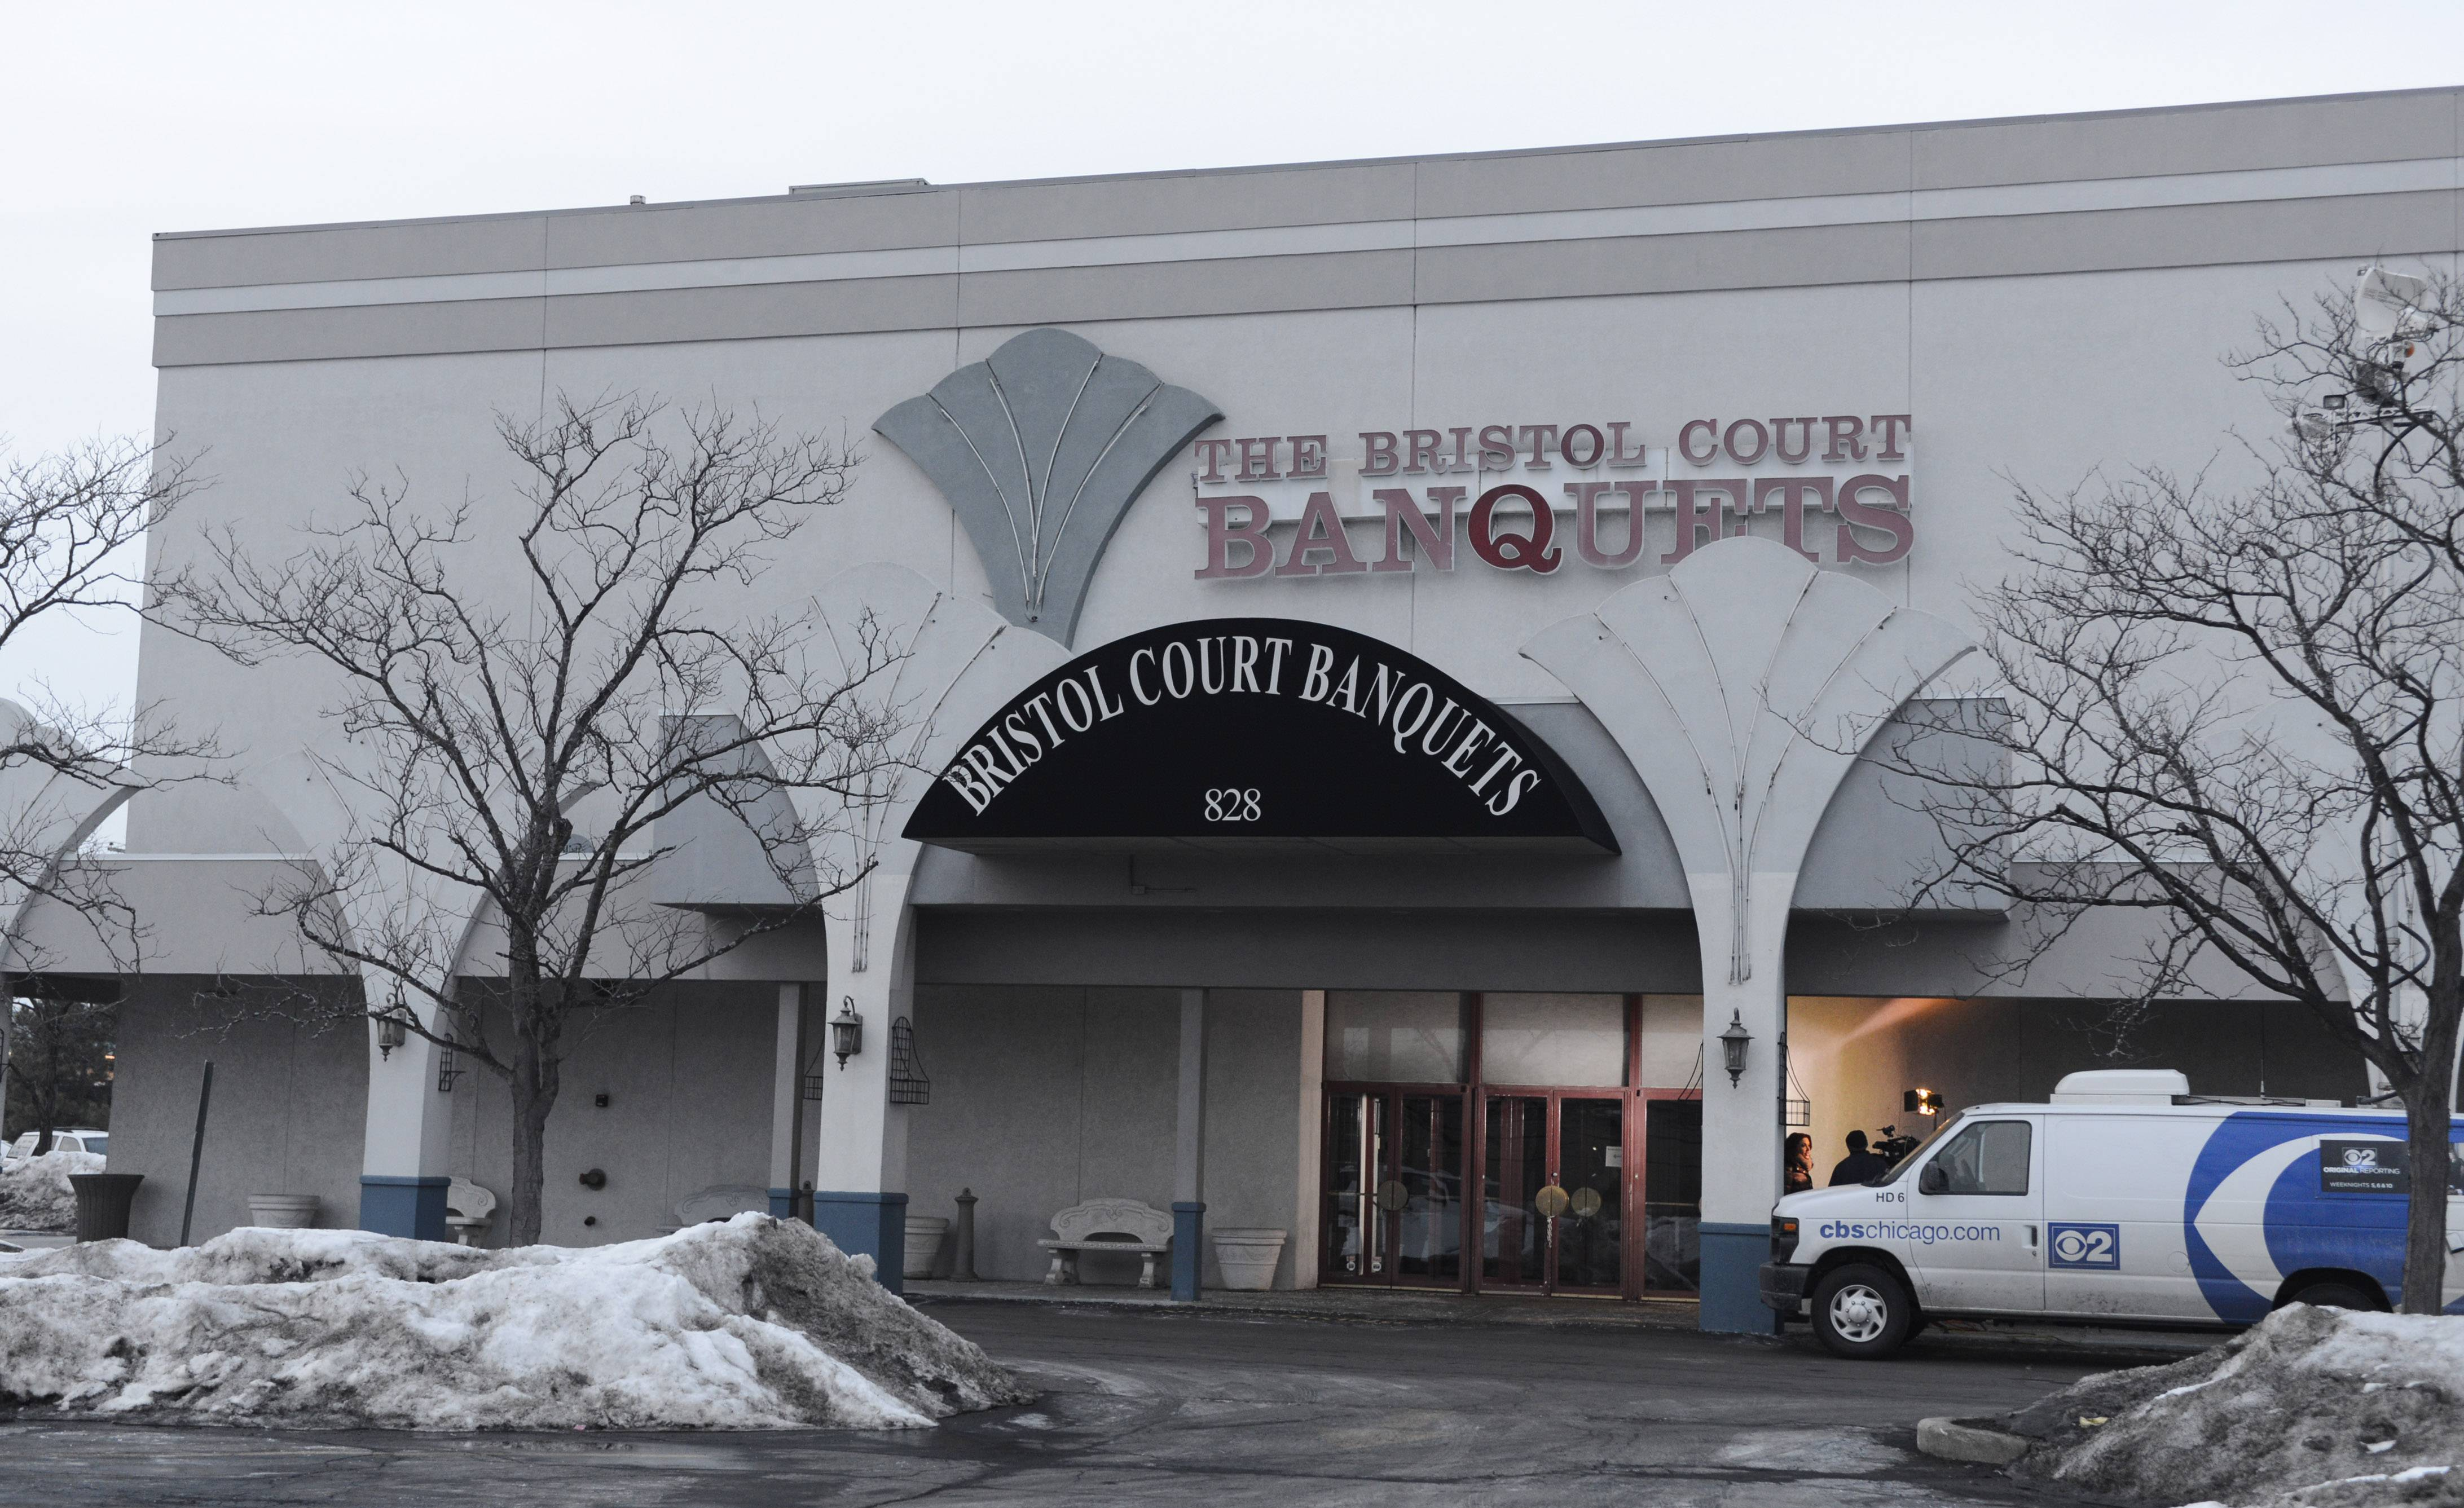 The former Bristol Court banquet hall in Mount Prospect, which now will be known as Bristol Palace, is closer to reopening under its new ownership after village trustees this week granted the facility a liquor license. The owners do not yet have a reopening date.